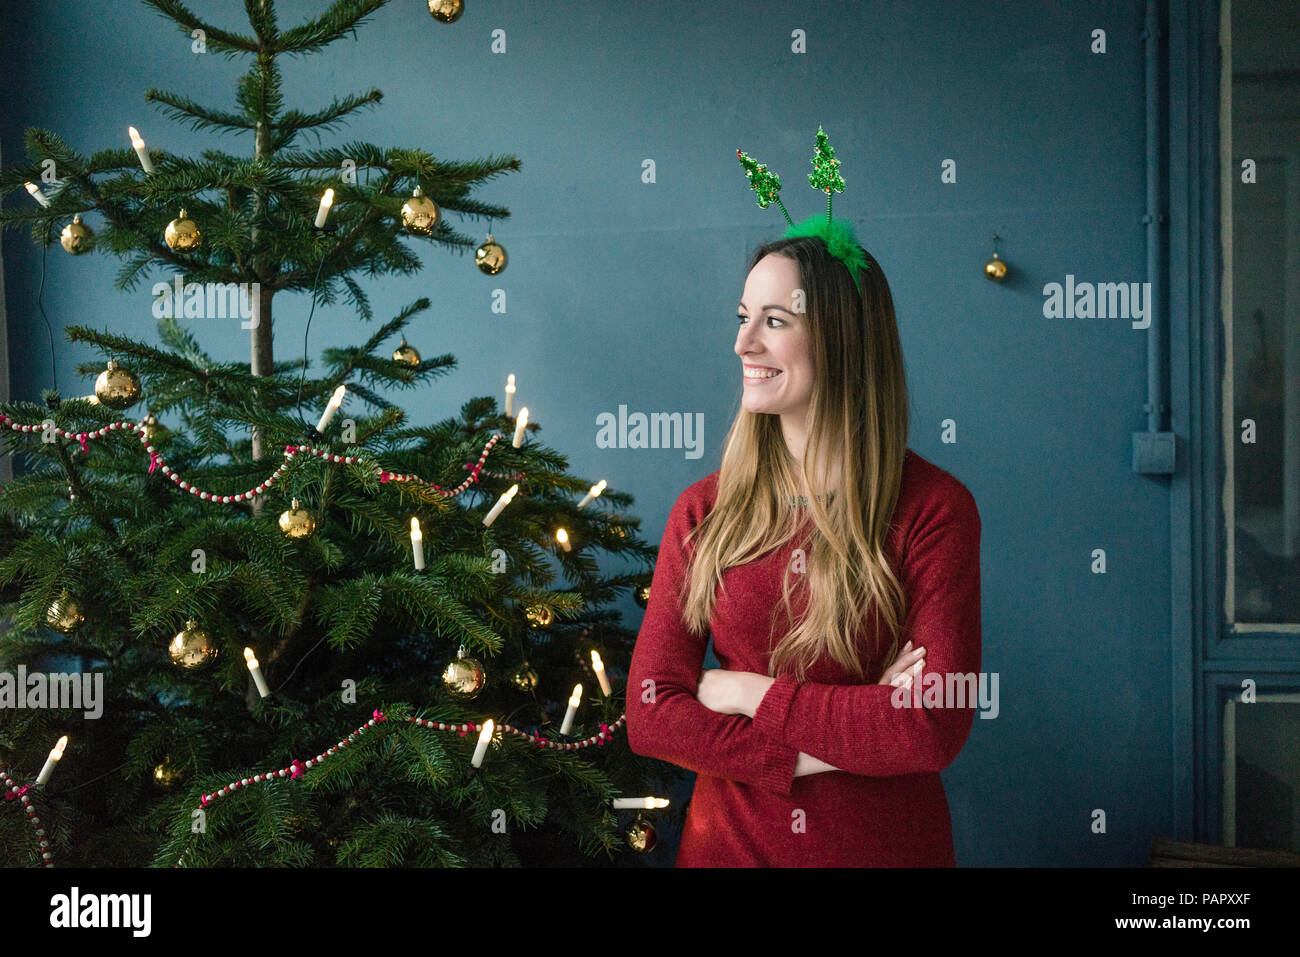 Content woman with Christmas headdress standing besides decorated Christmas tree - Stock Image